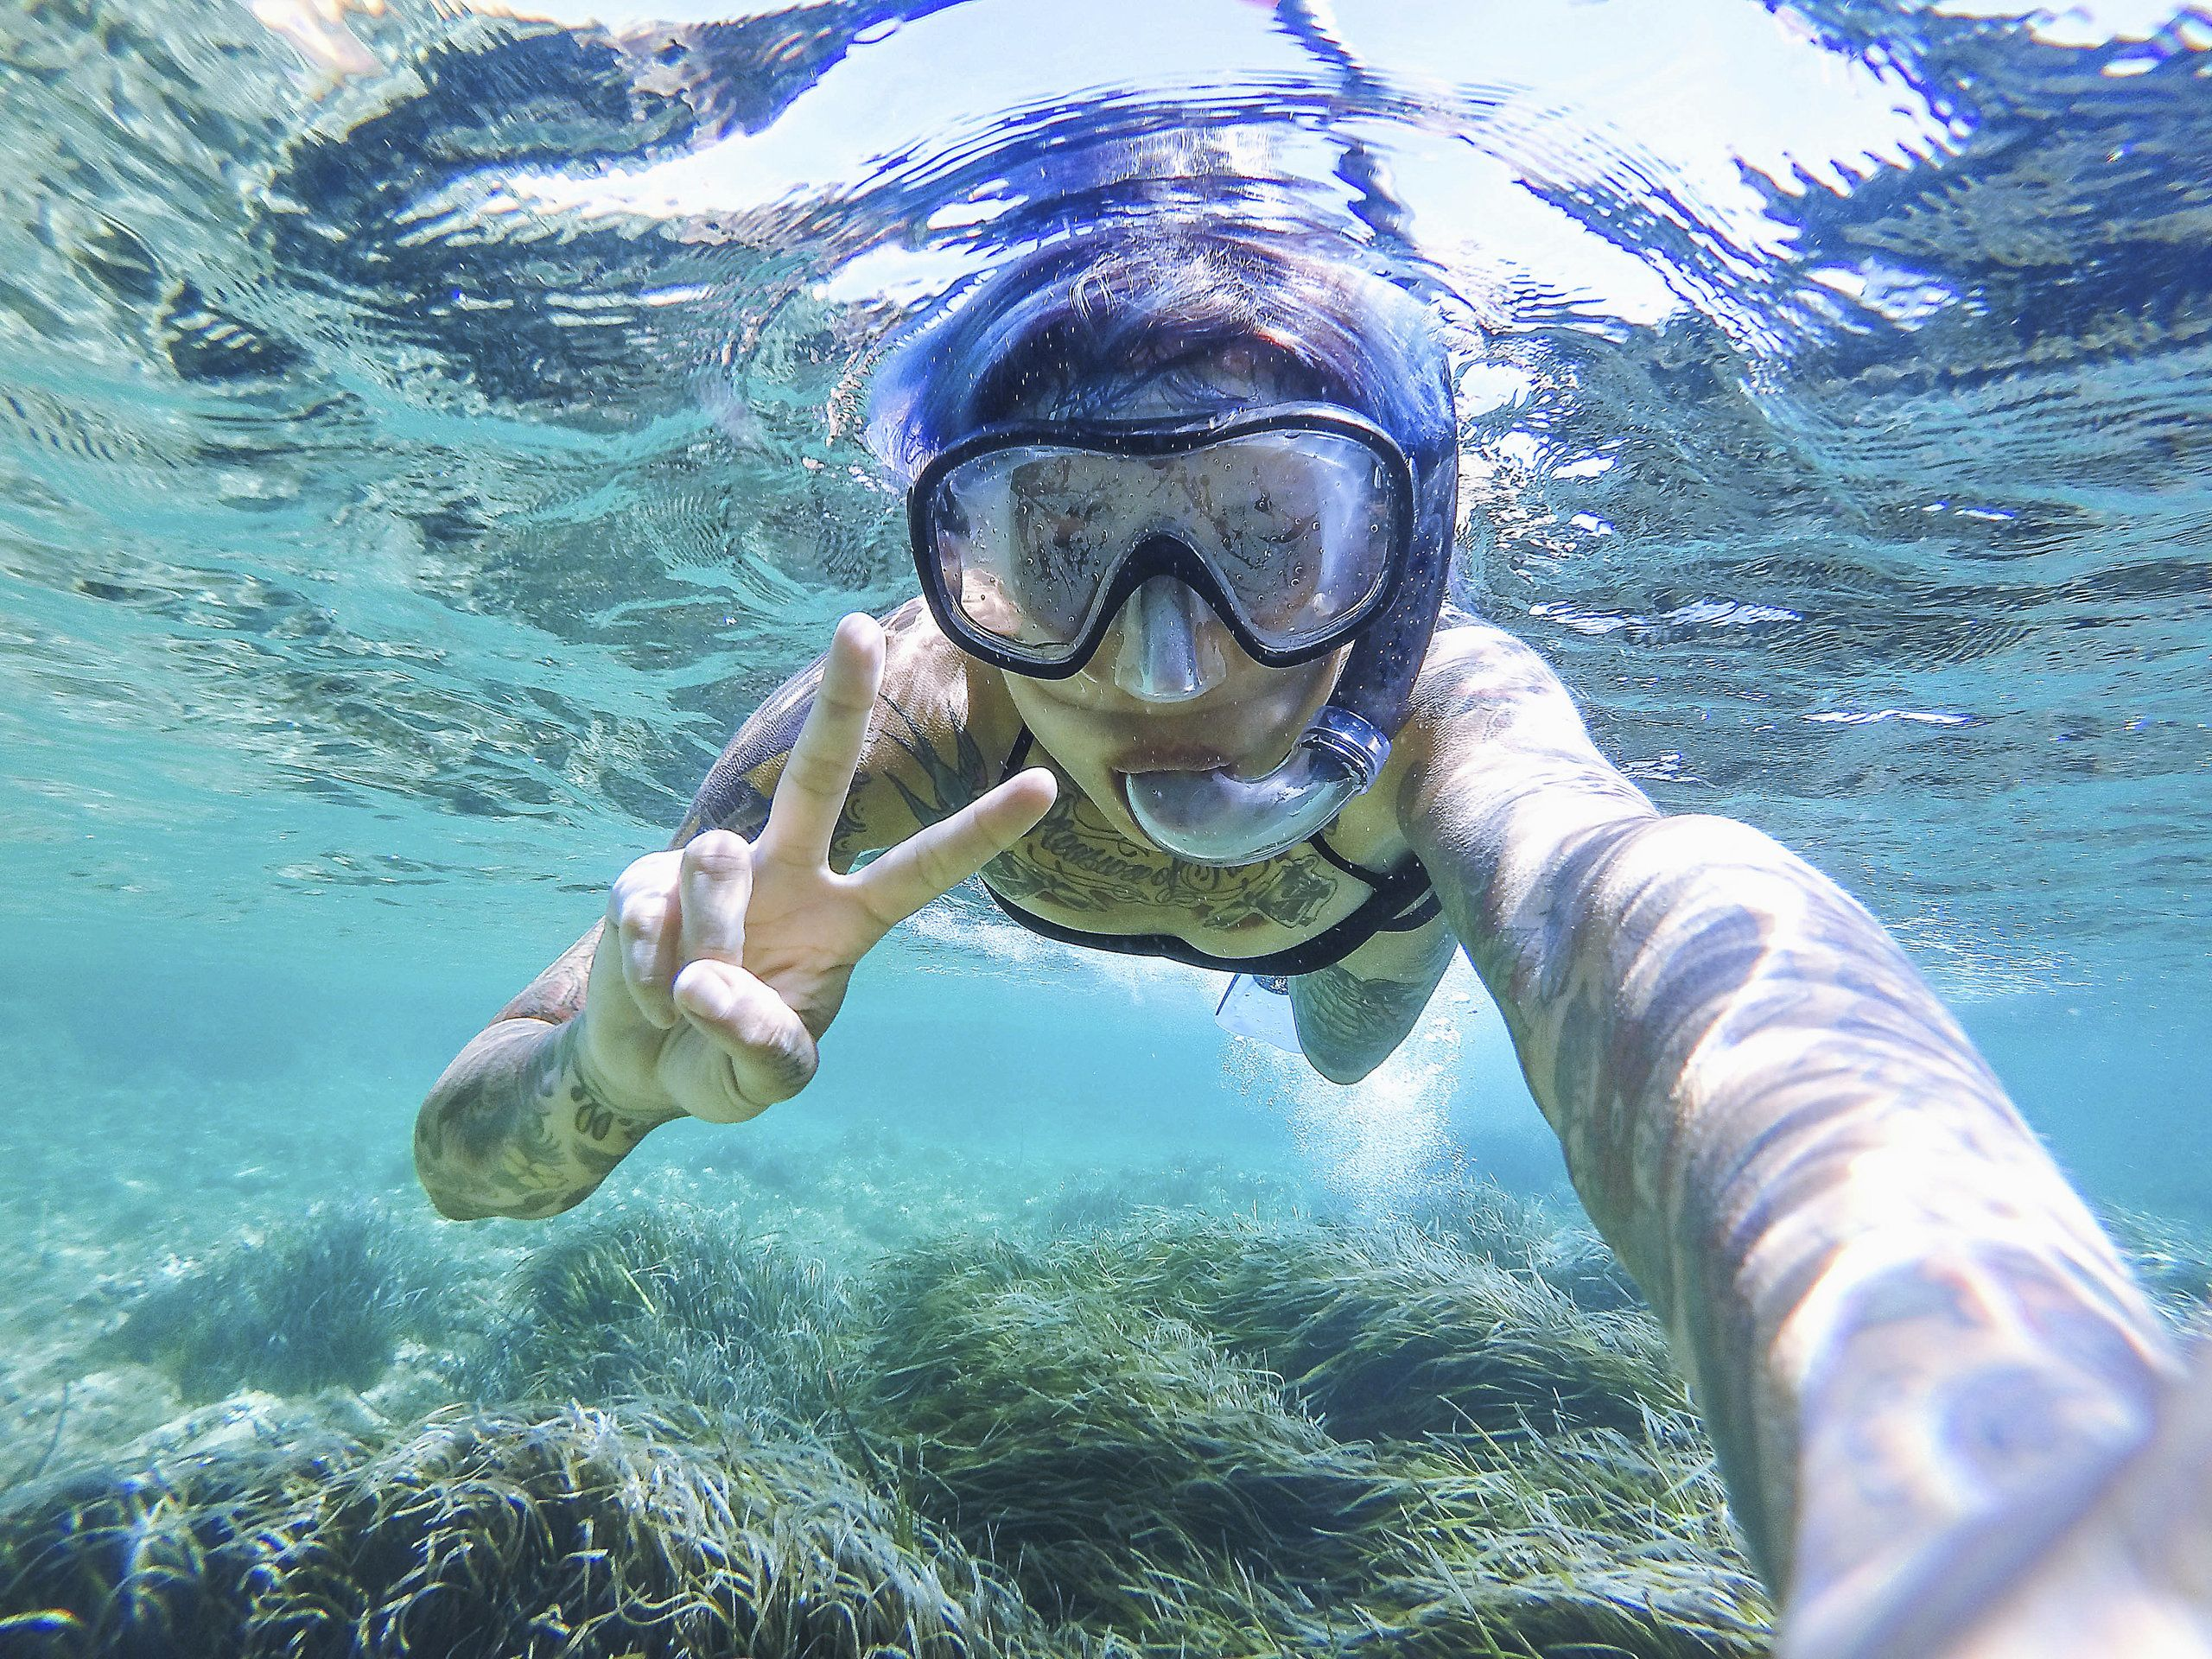 Snorkeling in the summer